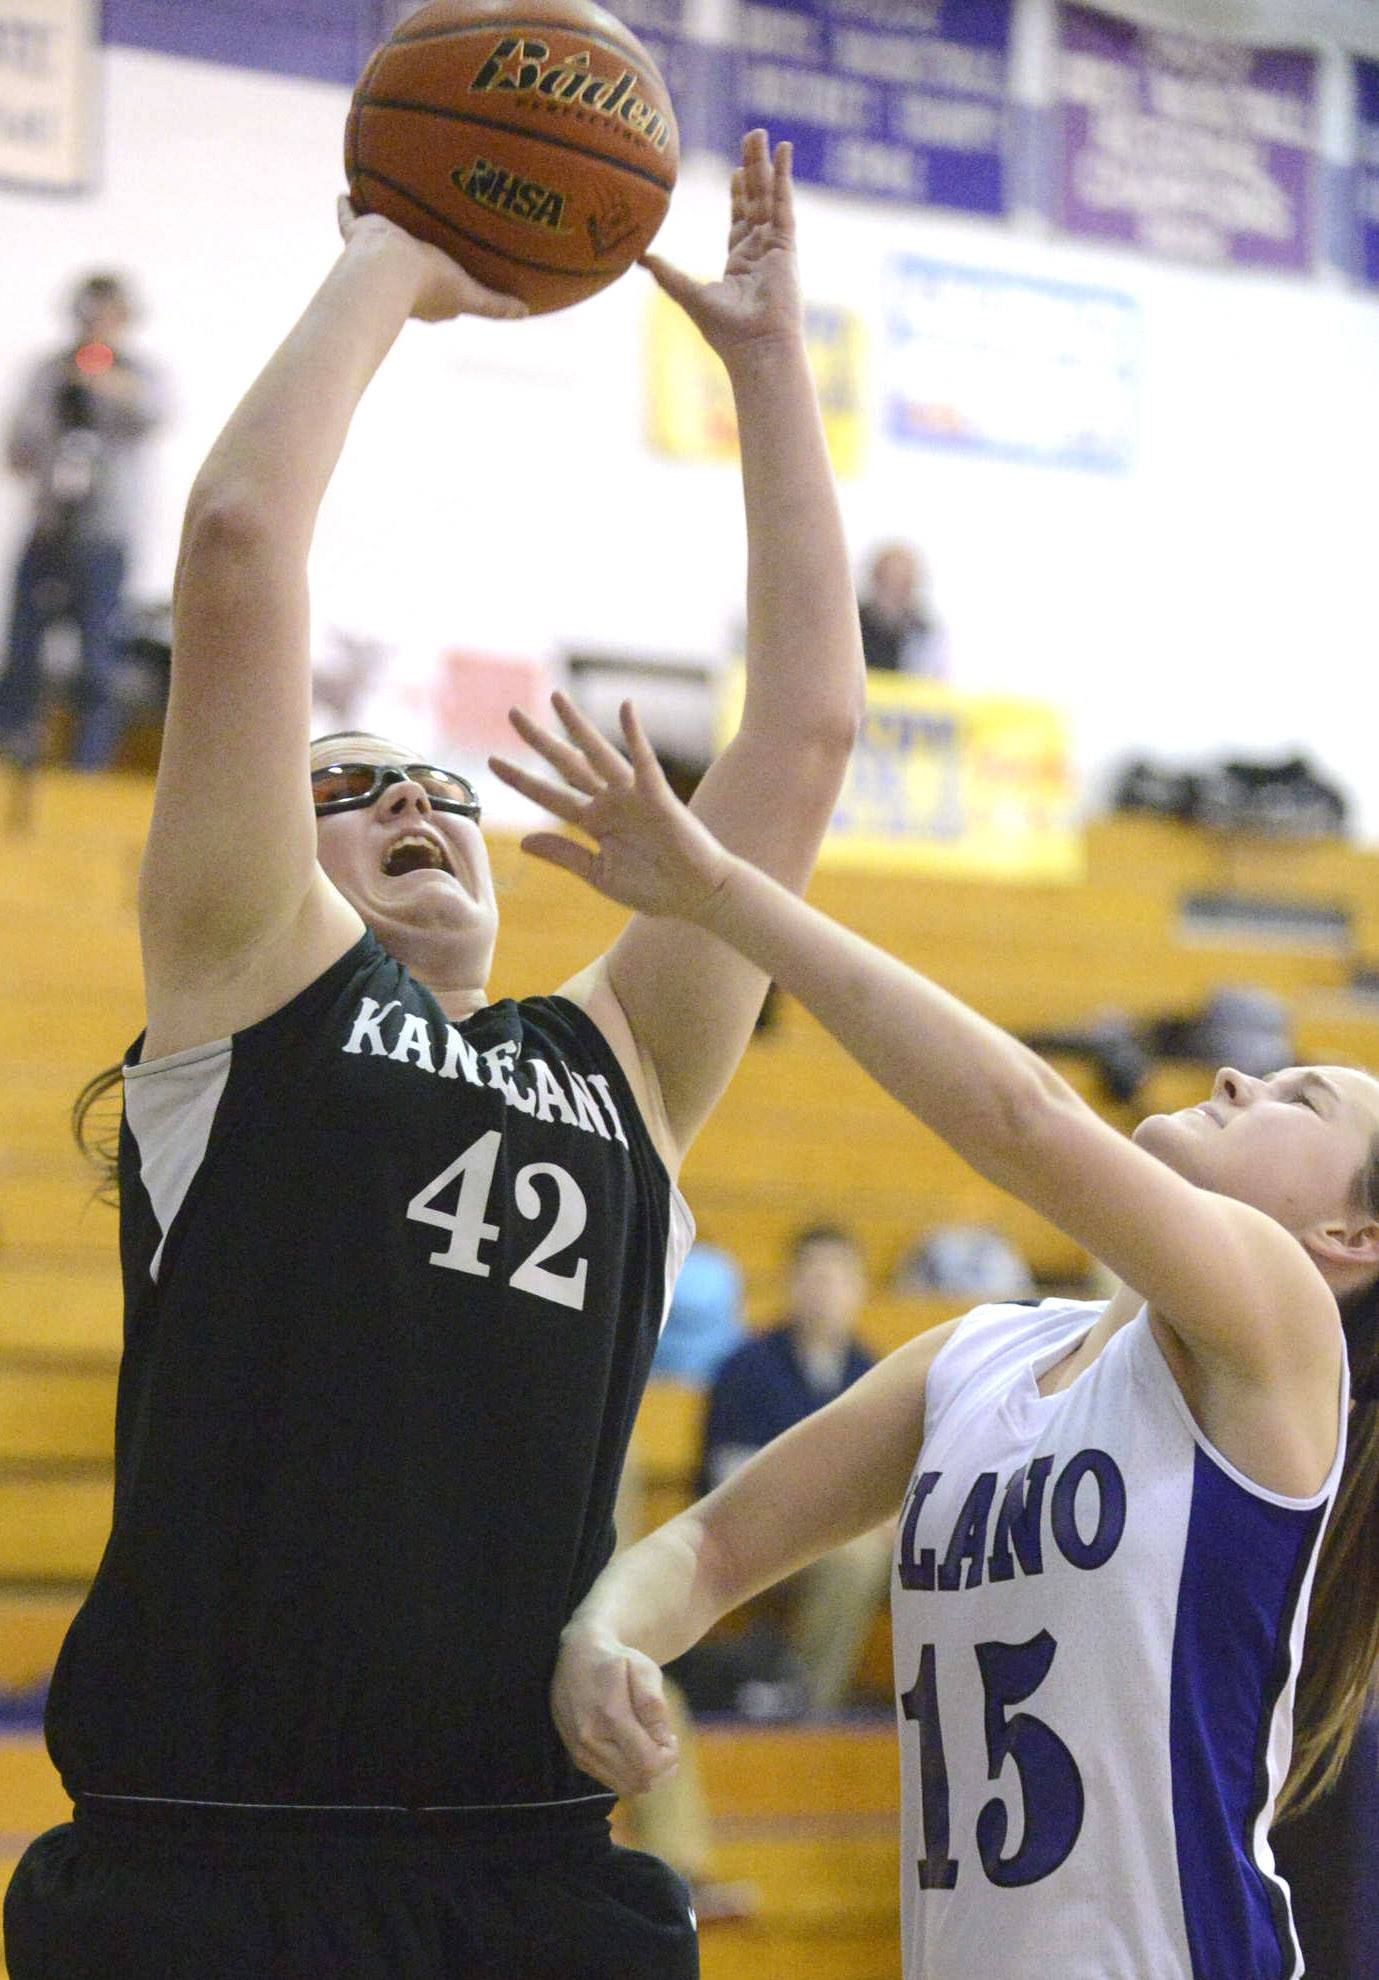 Images from the Plano vs. Kaneland Class 3A girls regional semifinal basketball game Wednesday, February 19, 2014.